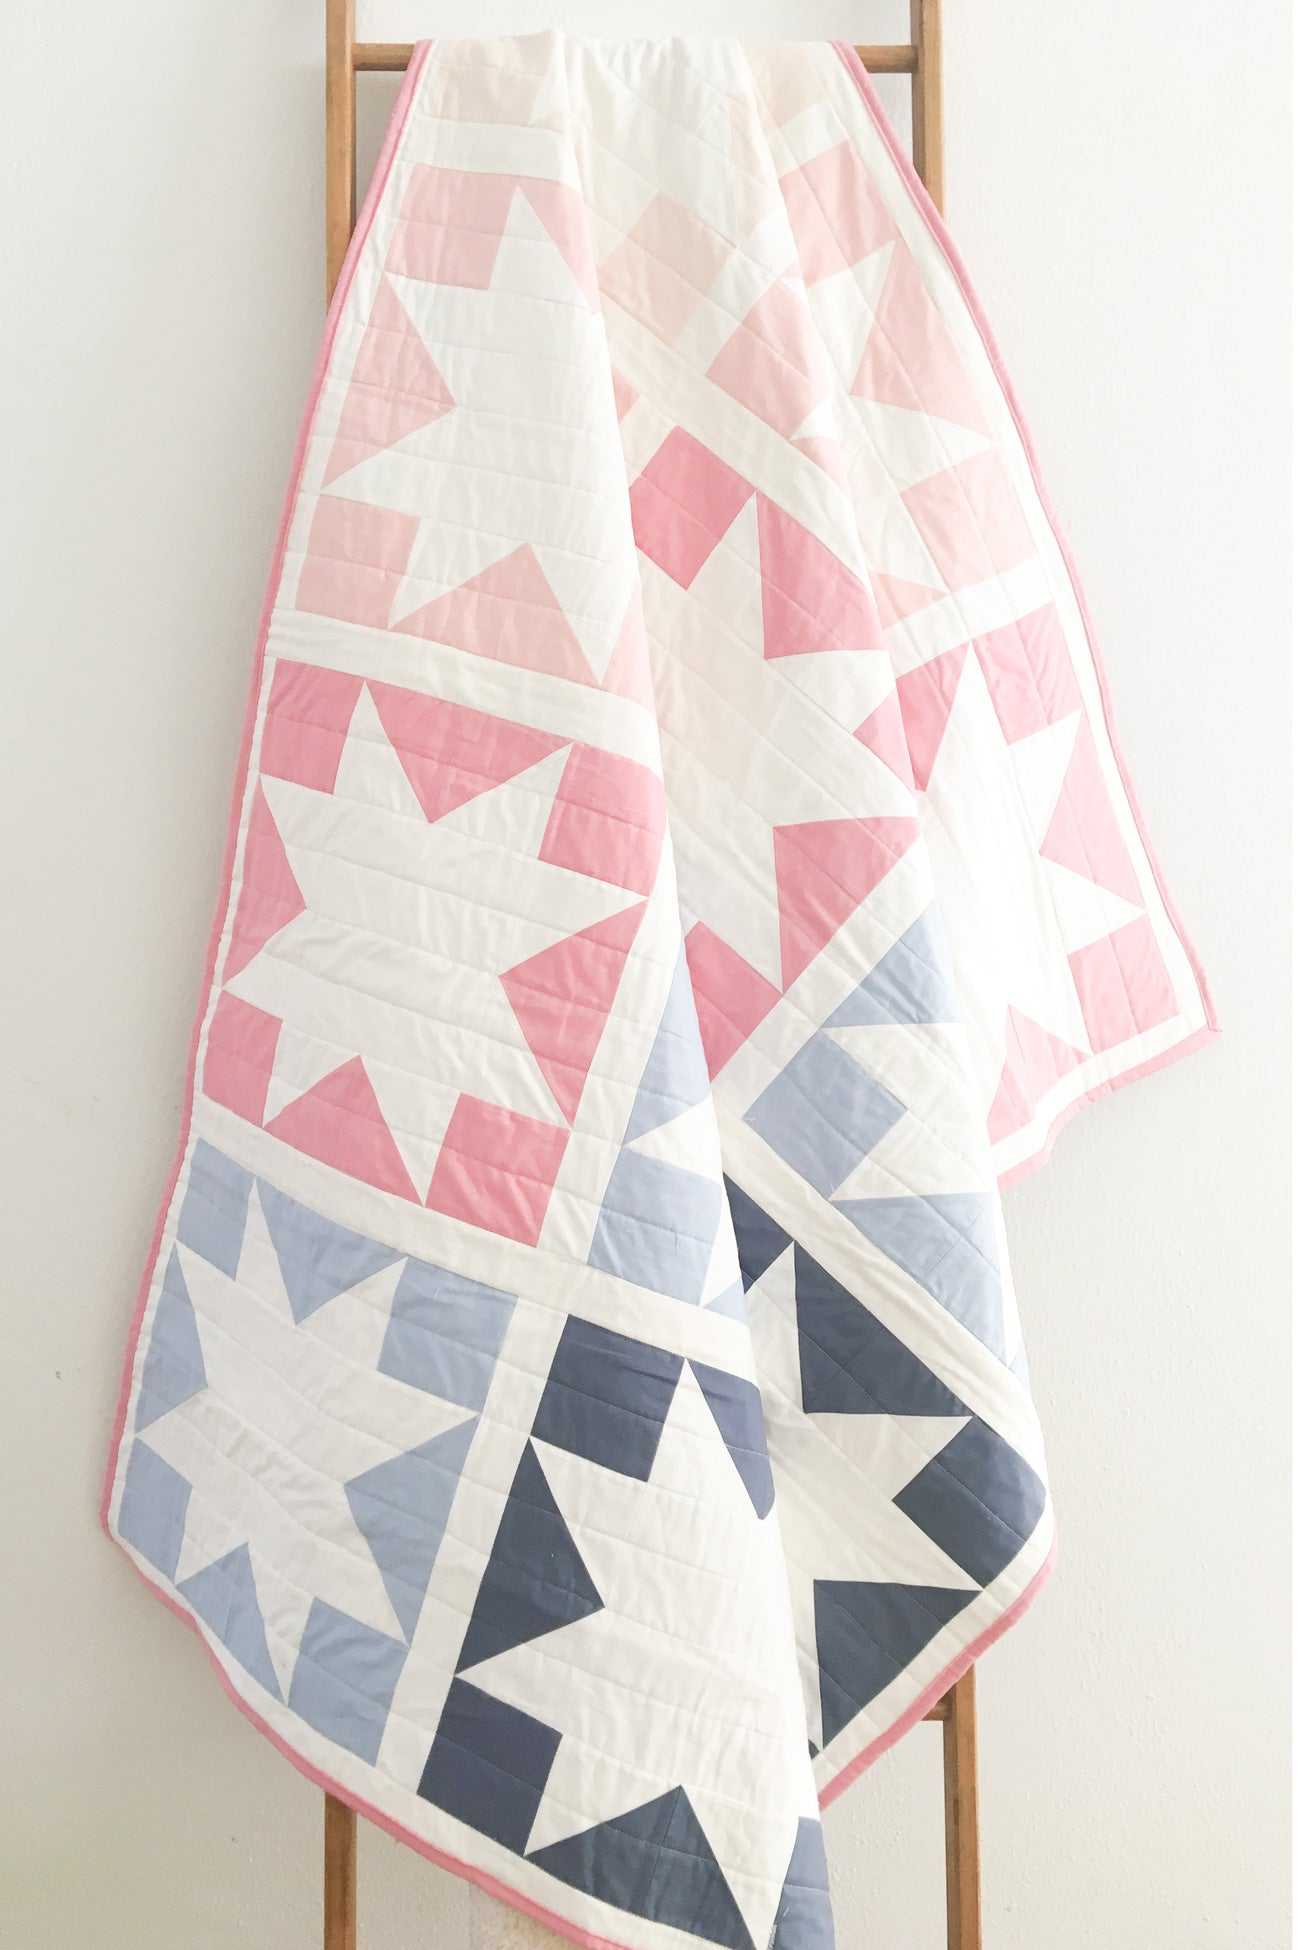 Inside Out Star: An easy, perfect for beginners quilt pattern. Spring quilt by CottonAndJoy.com